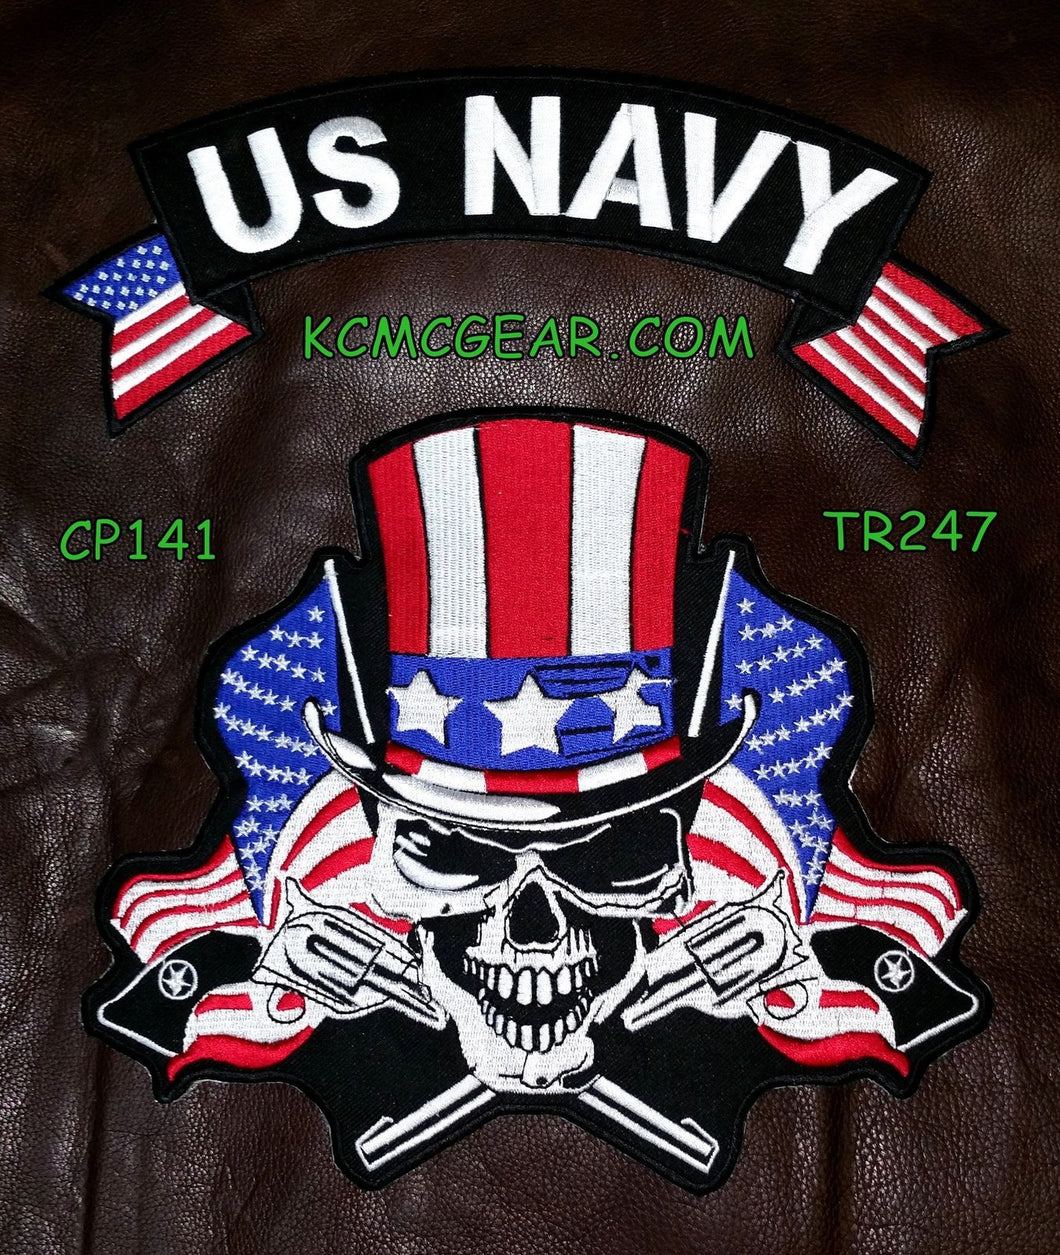 U.S. Navy Skull & Flags Patch Patches Embroidered Custom Patches Biker Patches-STURGIS MIDWEST INC.